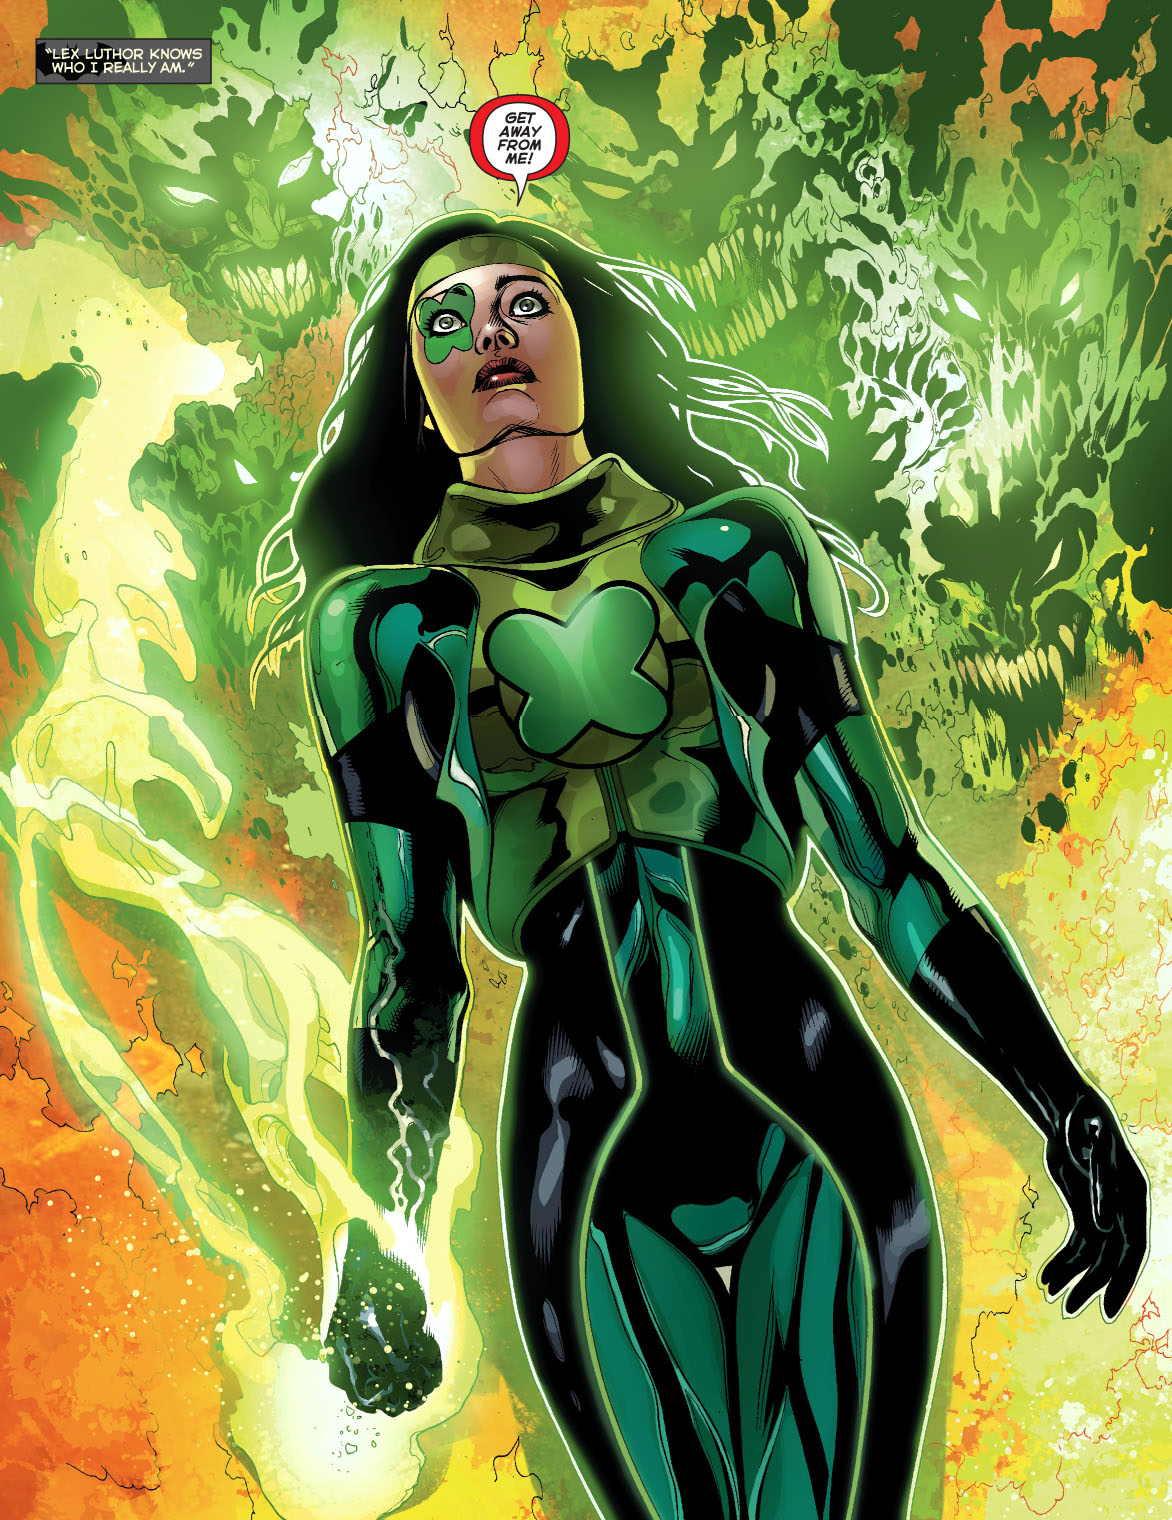 the new power ring